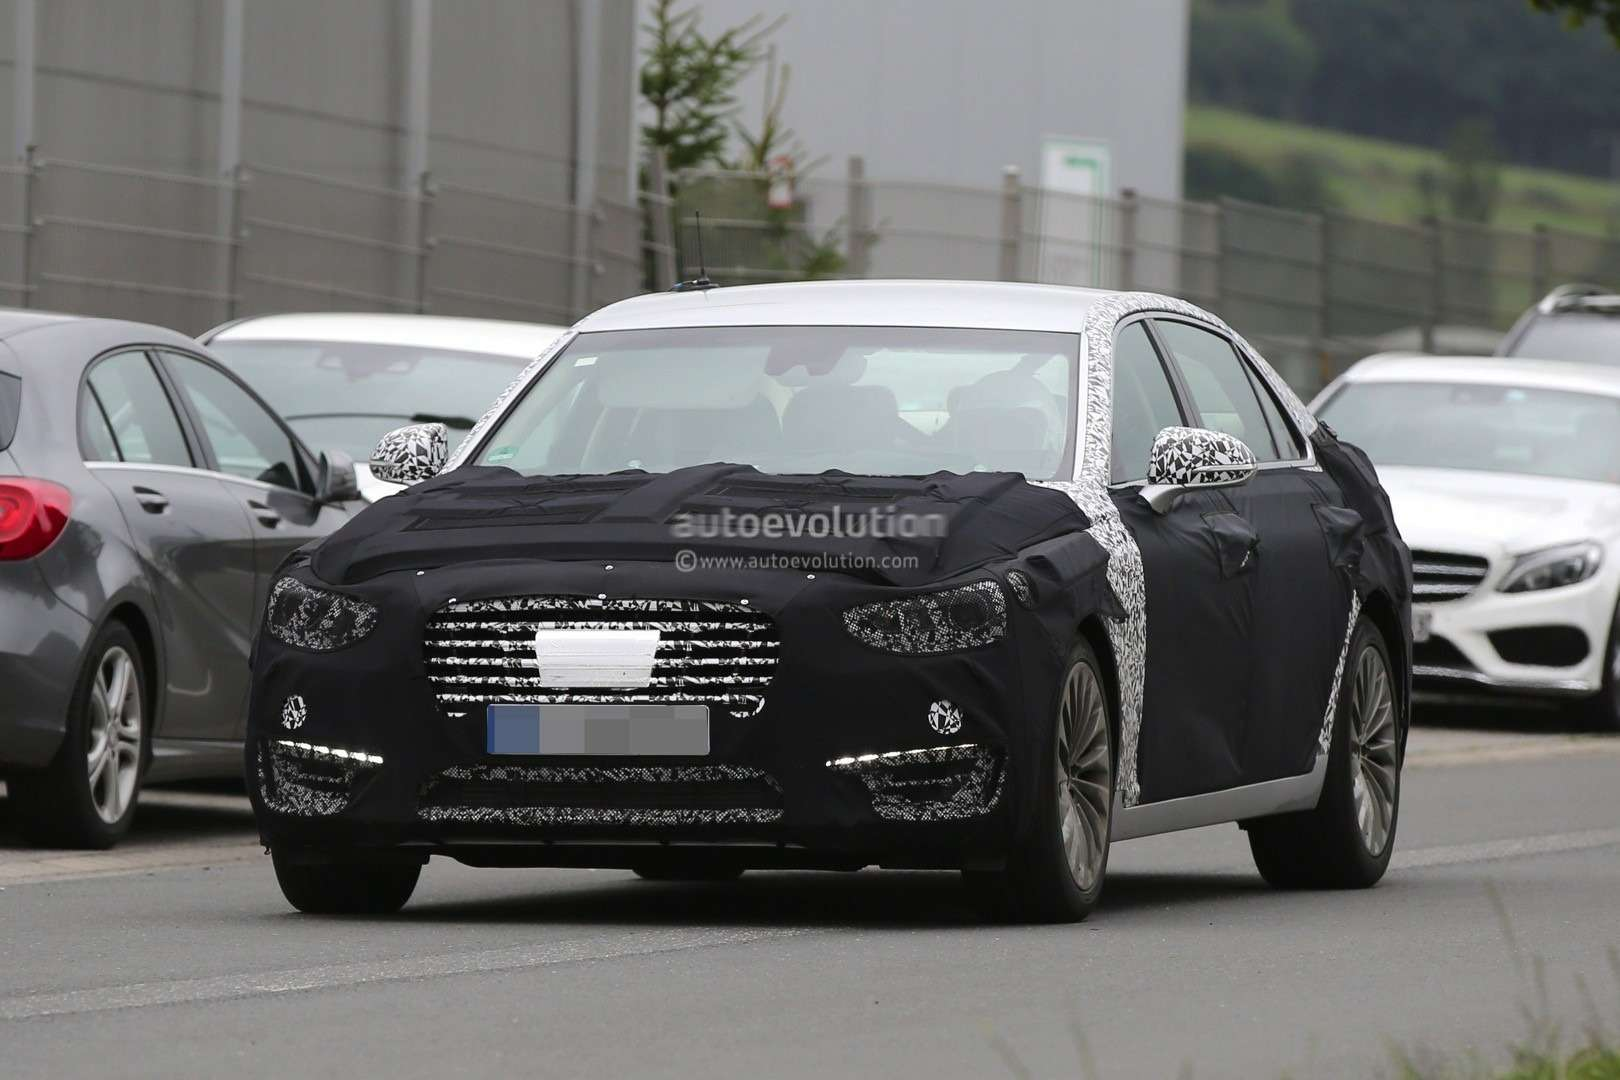 2017-hyundai-equus-spied-out-testing-in-germany-photo-gallery_7